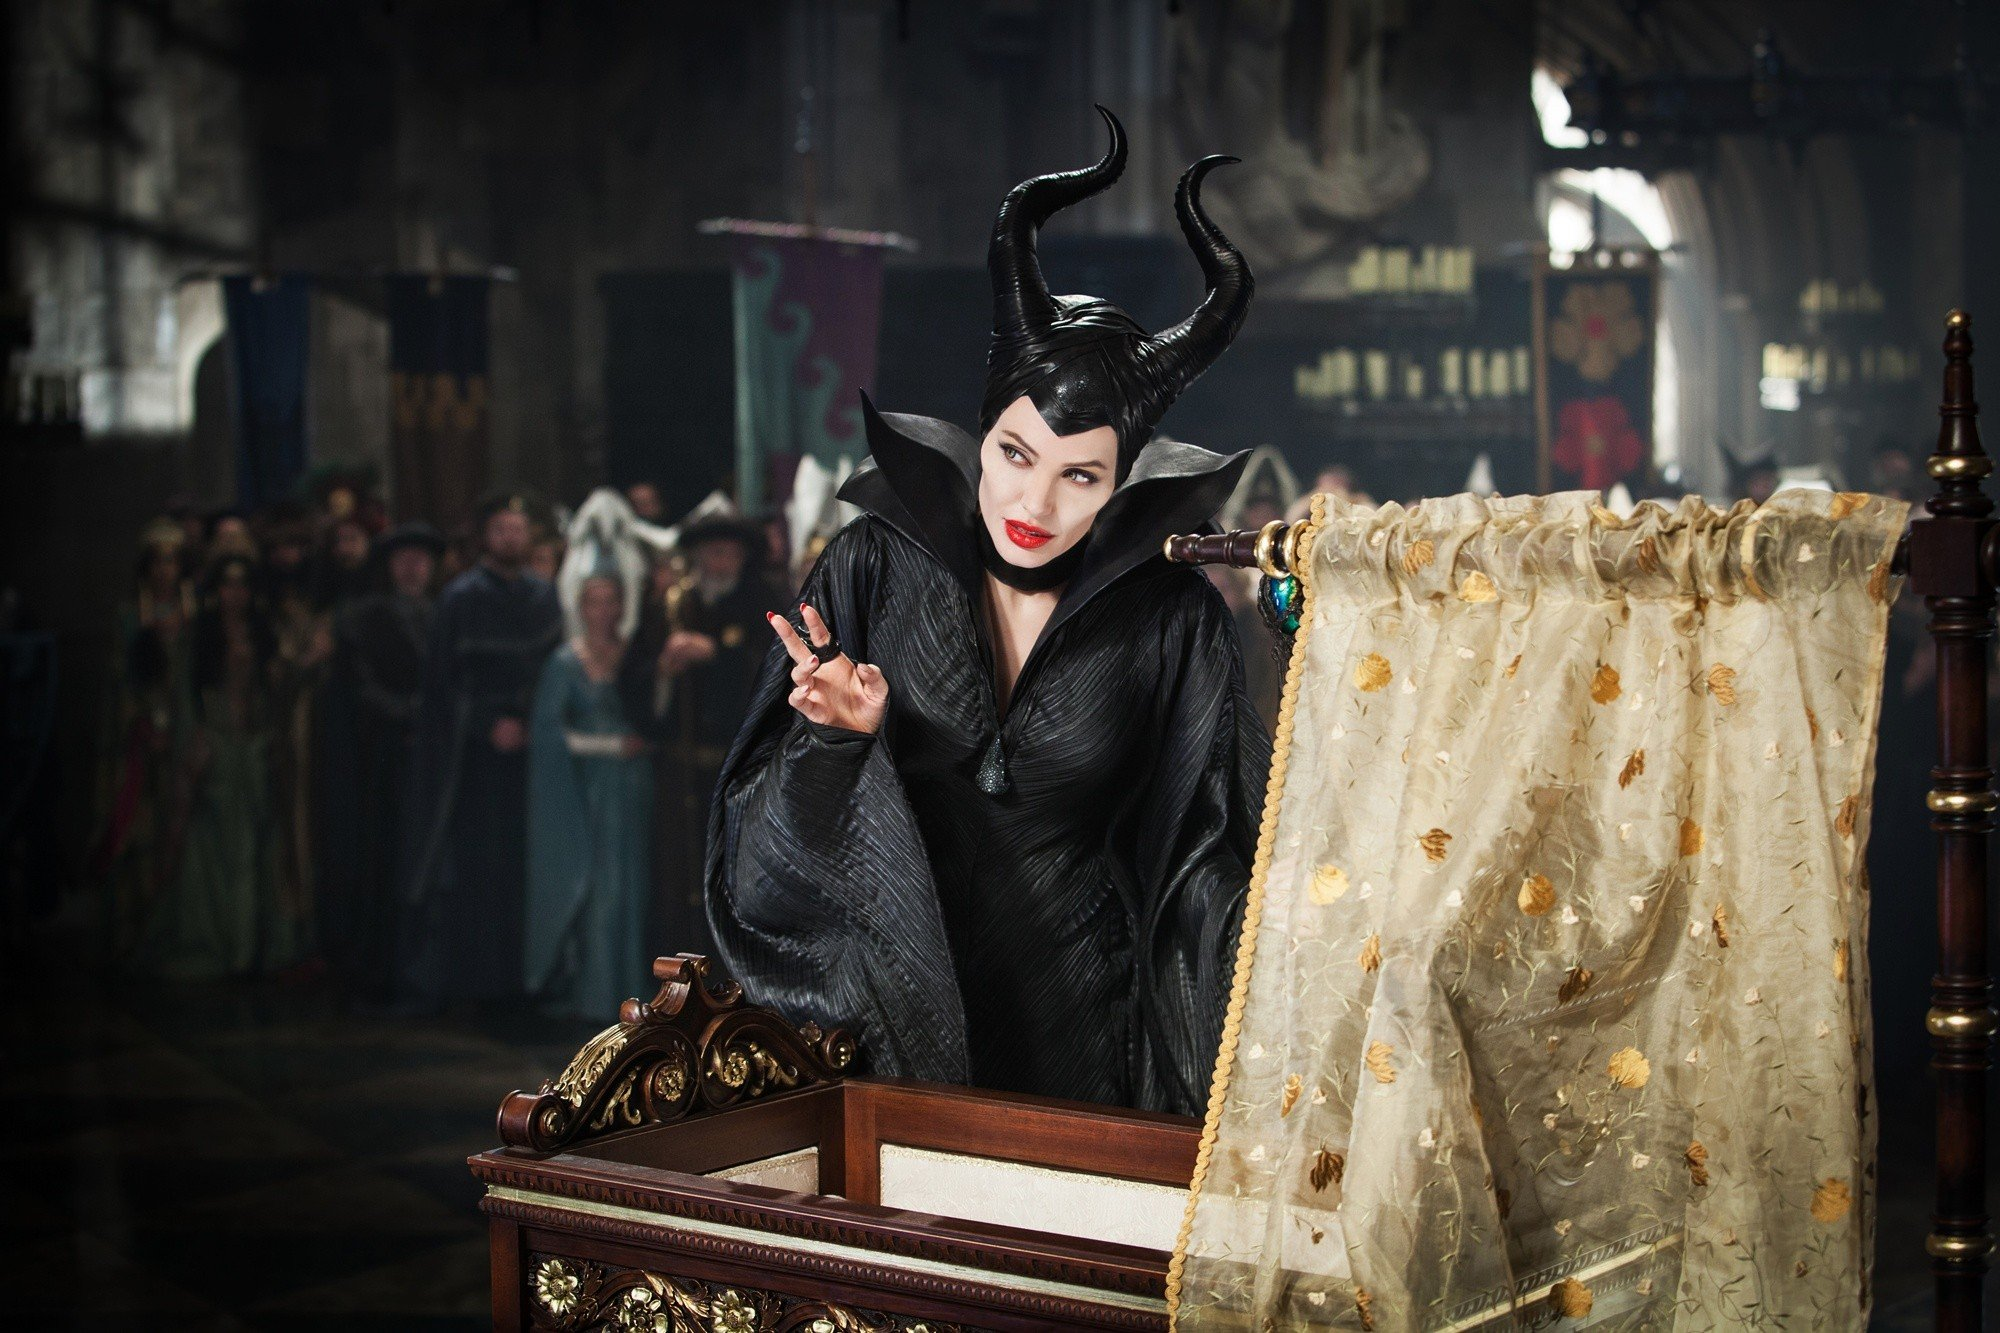 'Maleficent' Wins Domestic Box Office, Becomes Angelina Jolie's Best Opener